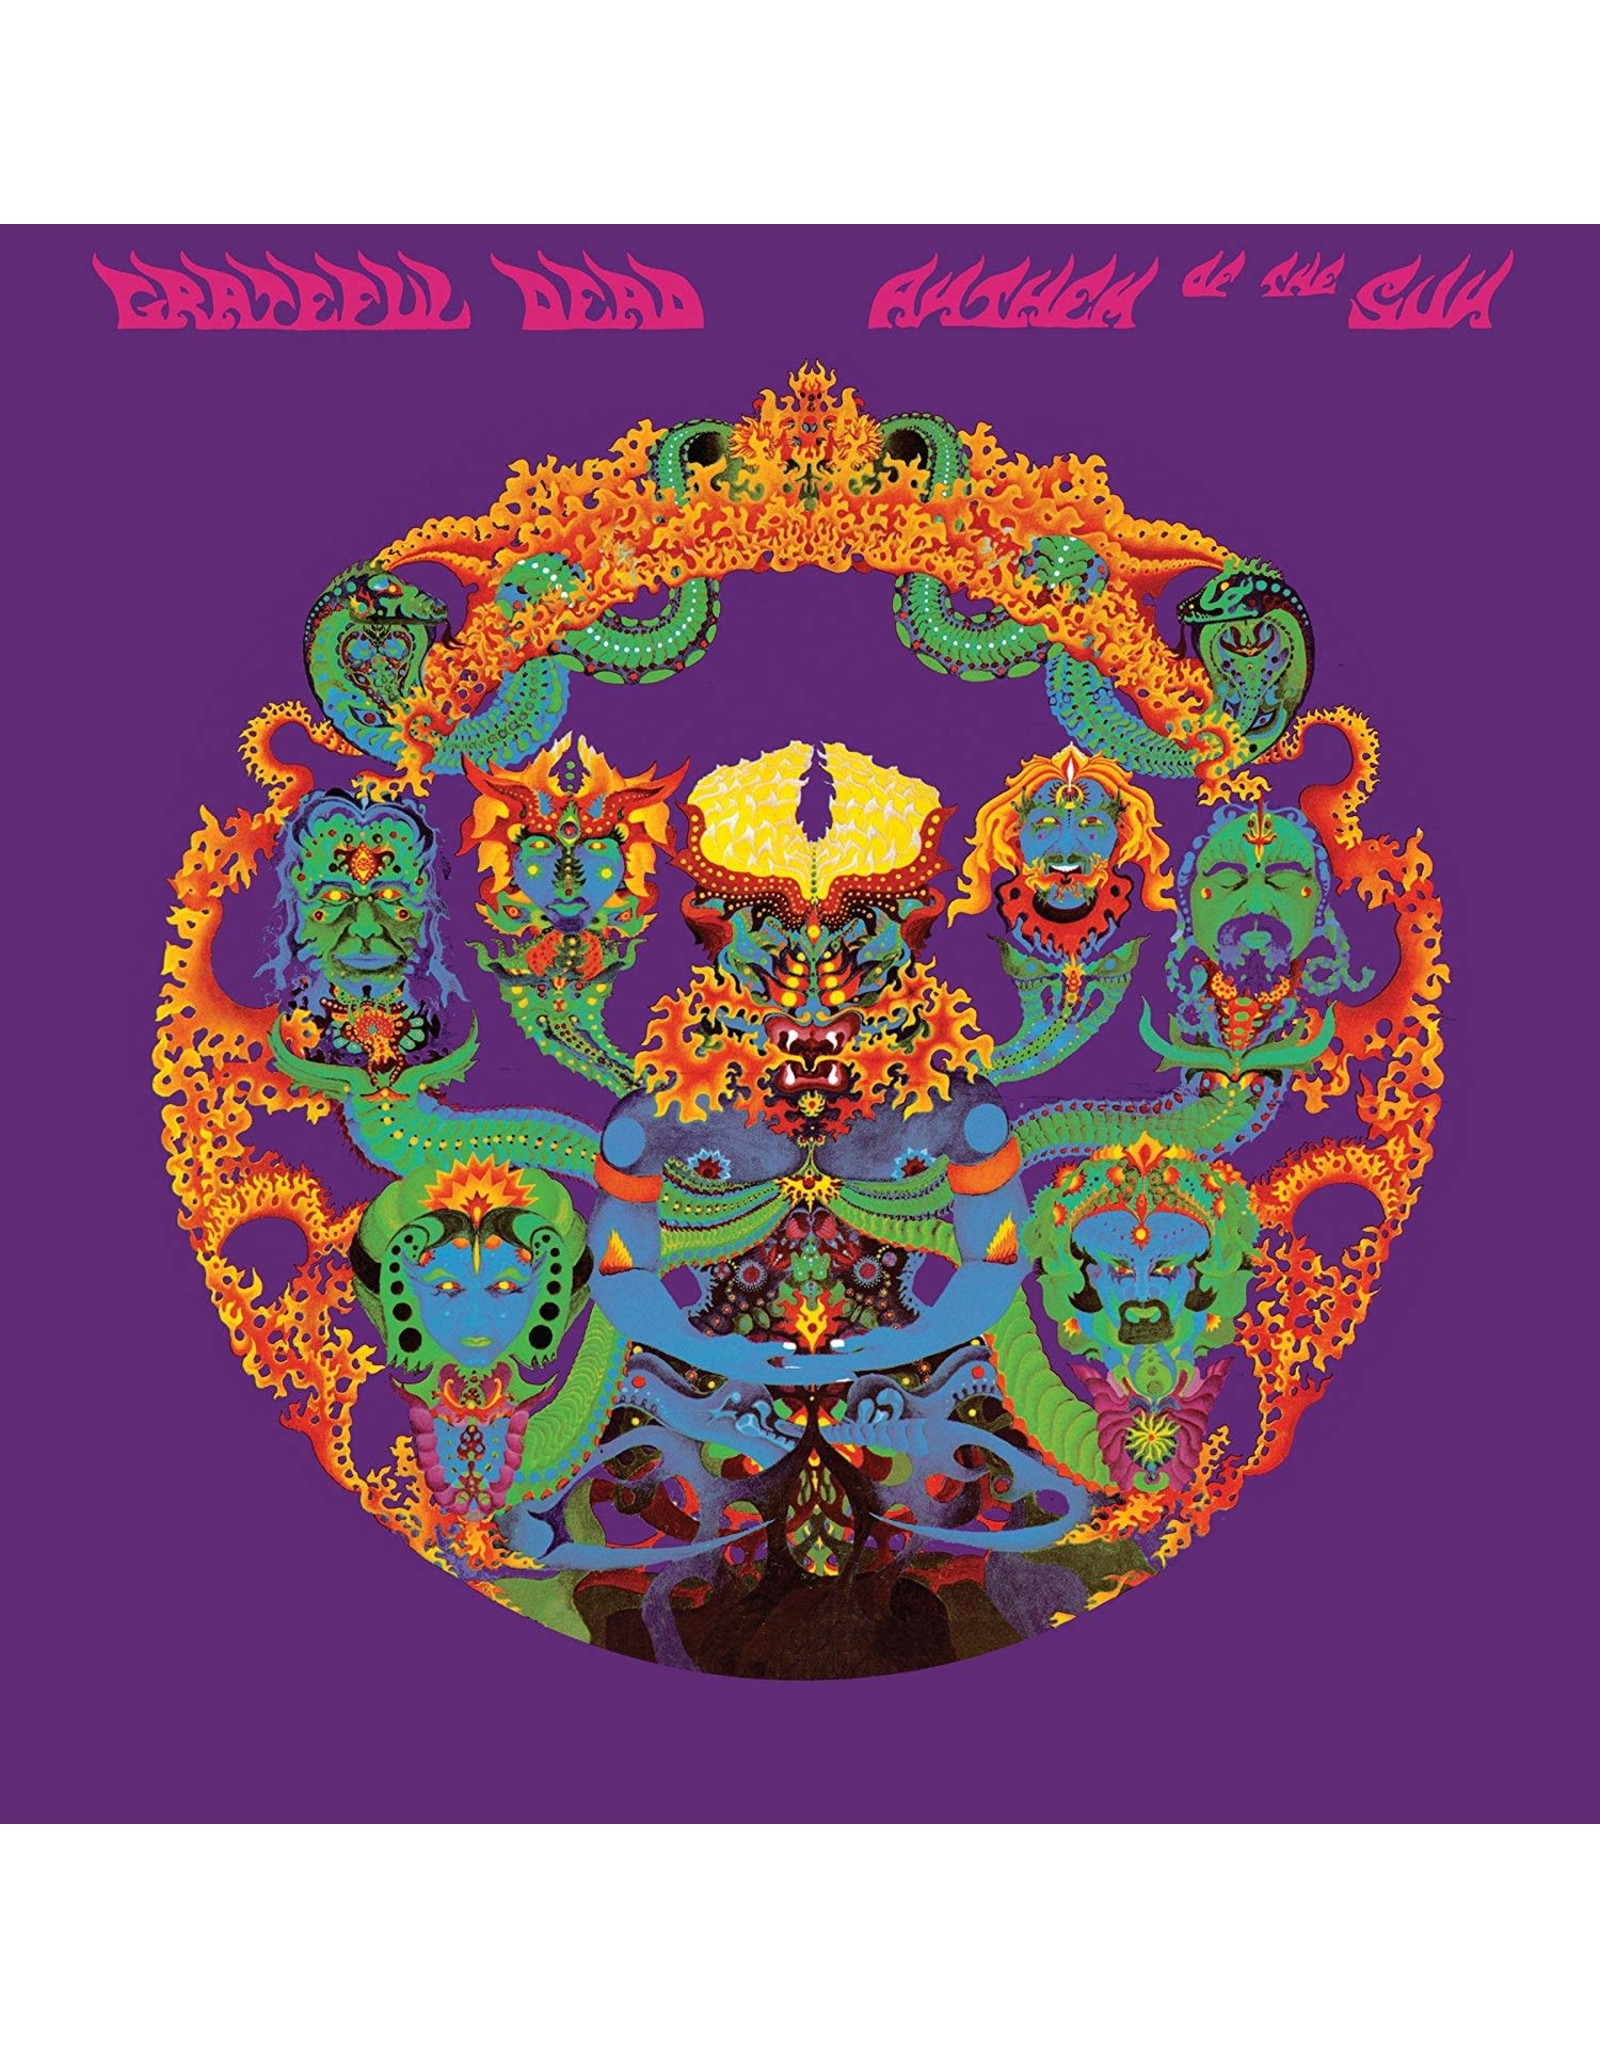 Grateful Dead - Anthem of the Sun (50th Anniversary Picture Disc)